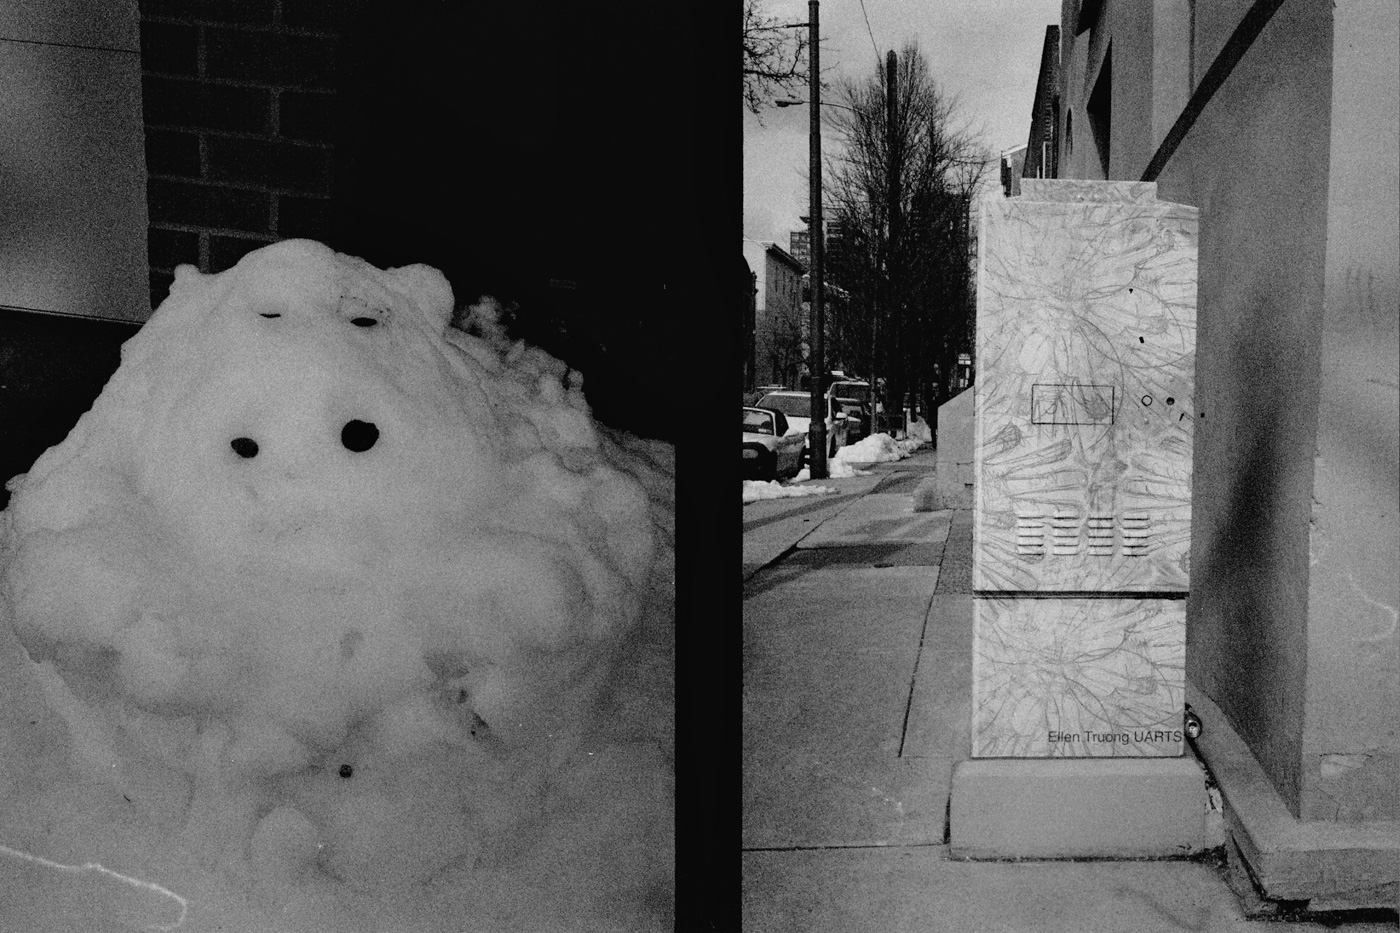 Snow Pile and Decorated Utility Box